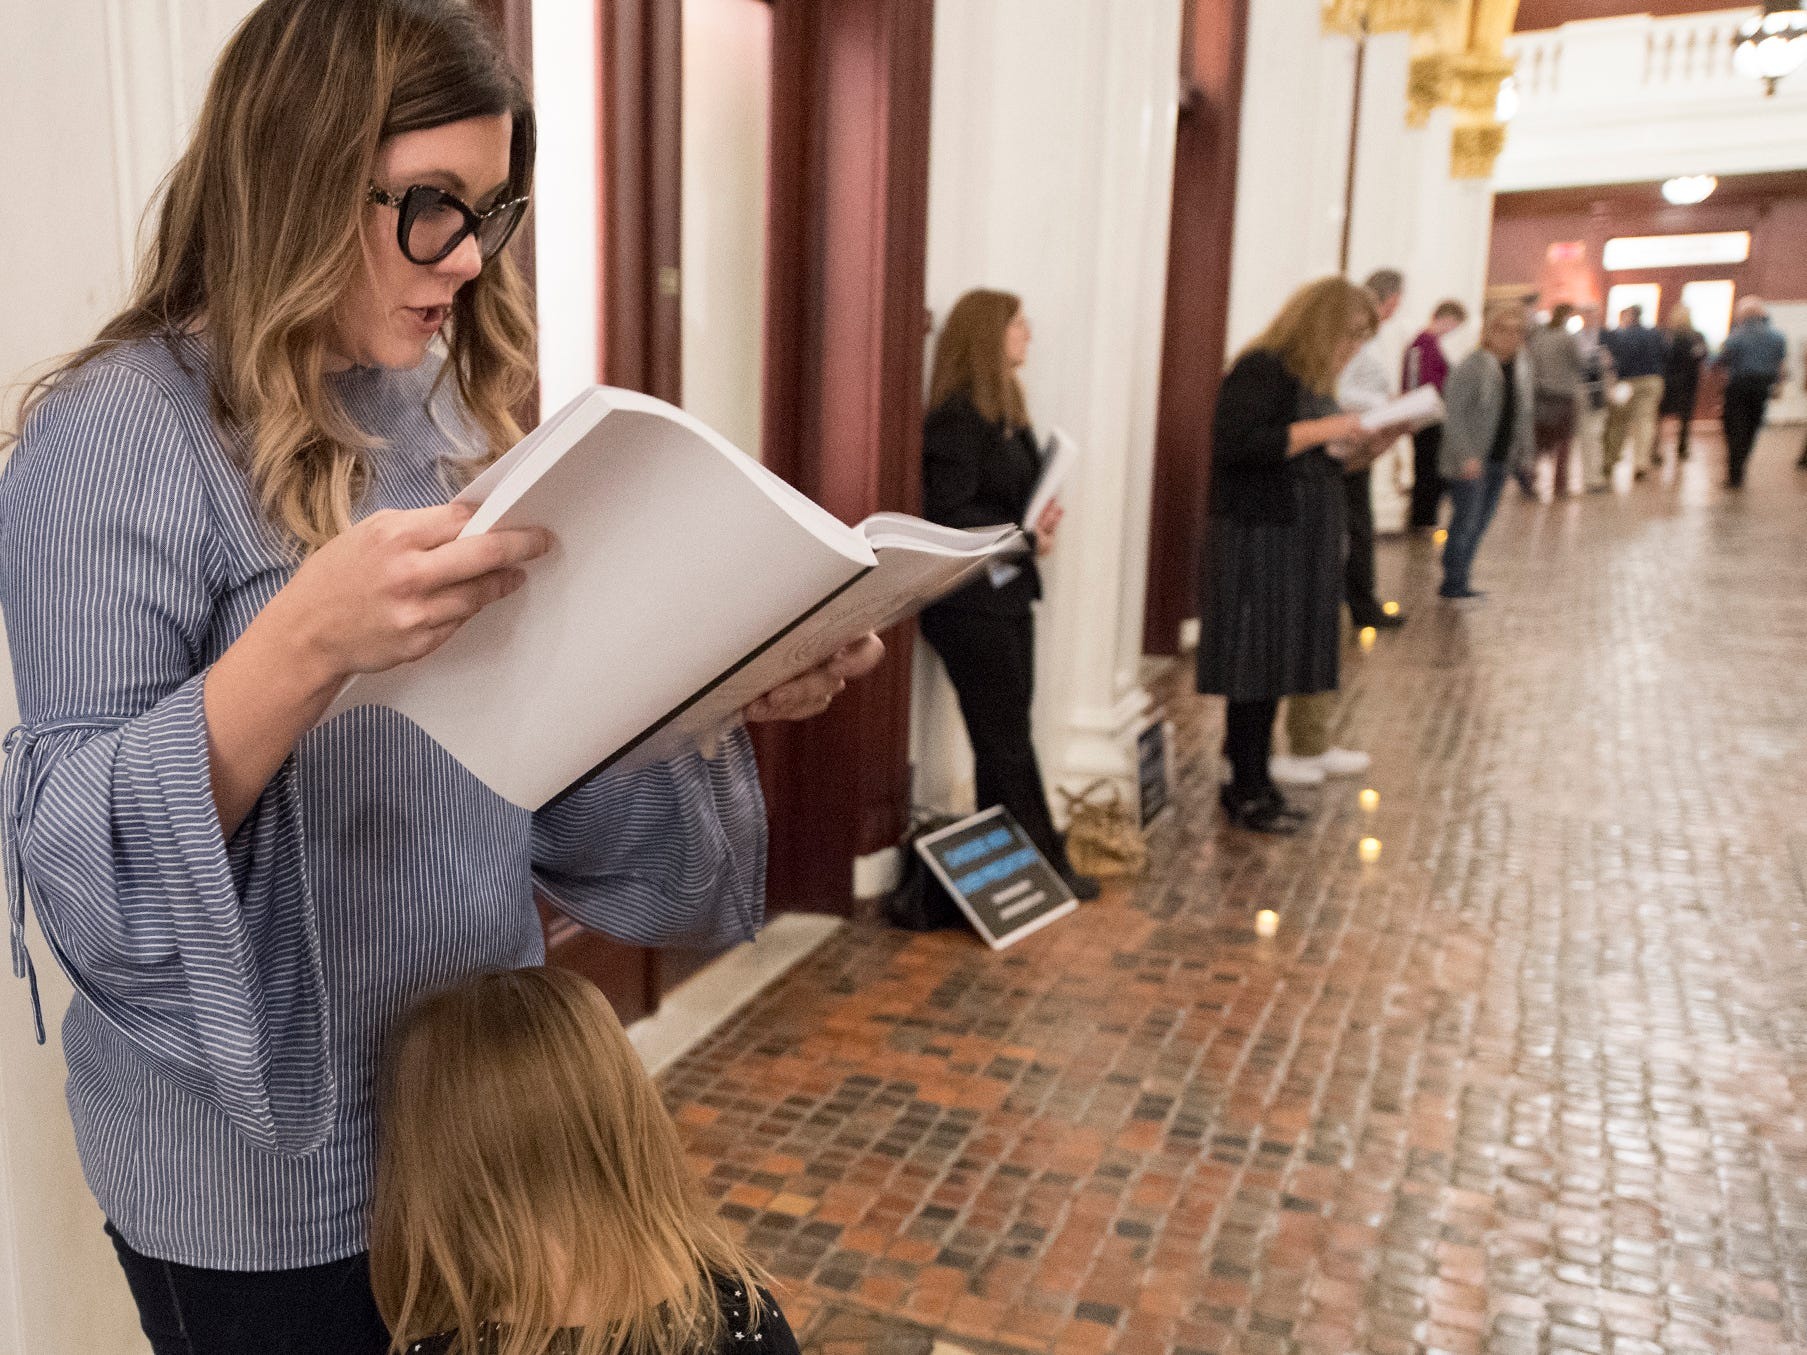 Adrienne Doolan, top, a victim of non-clergy sexual abuse in Hanover, reads excerpts aloud from a state grand jury report while her daughter Reagan, 4, leans into her during the demonstration for statute of limitations reform to the state's childhood sexual abuse laws at the state capitol in Harrisburg on Monday. Doolan said that she wanted her daughter to understand that she should speak up immediately if someone harmed her.